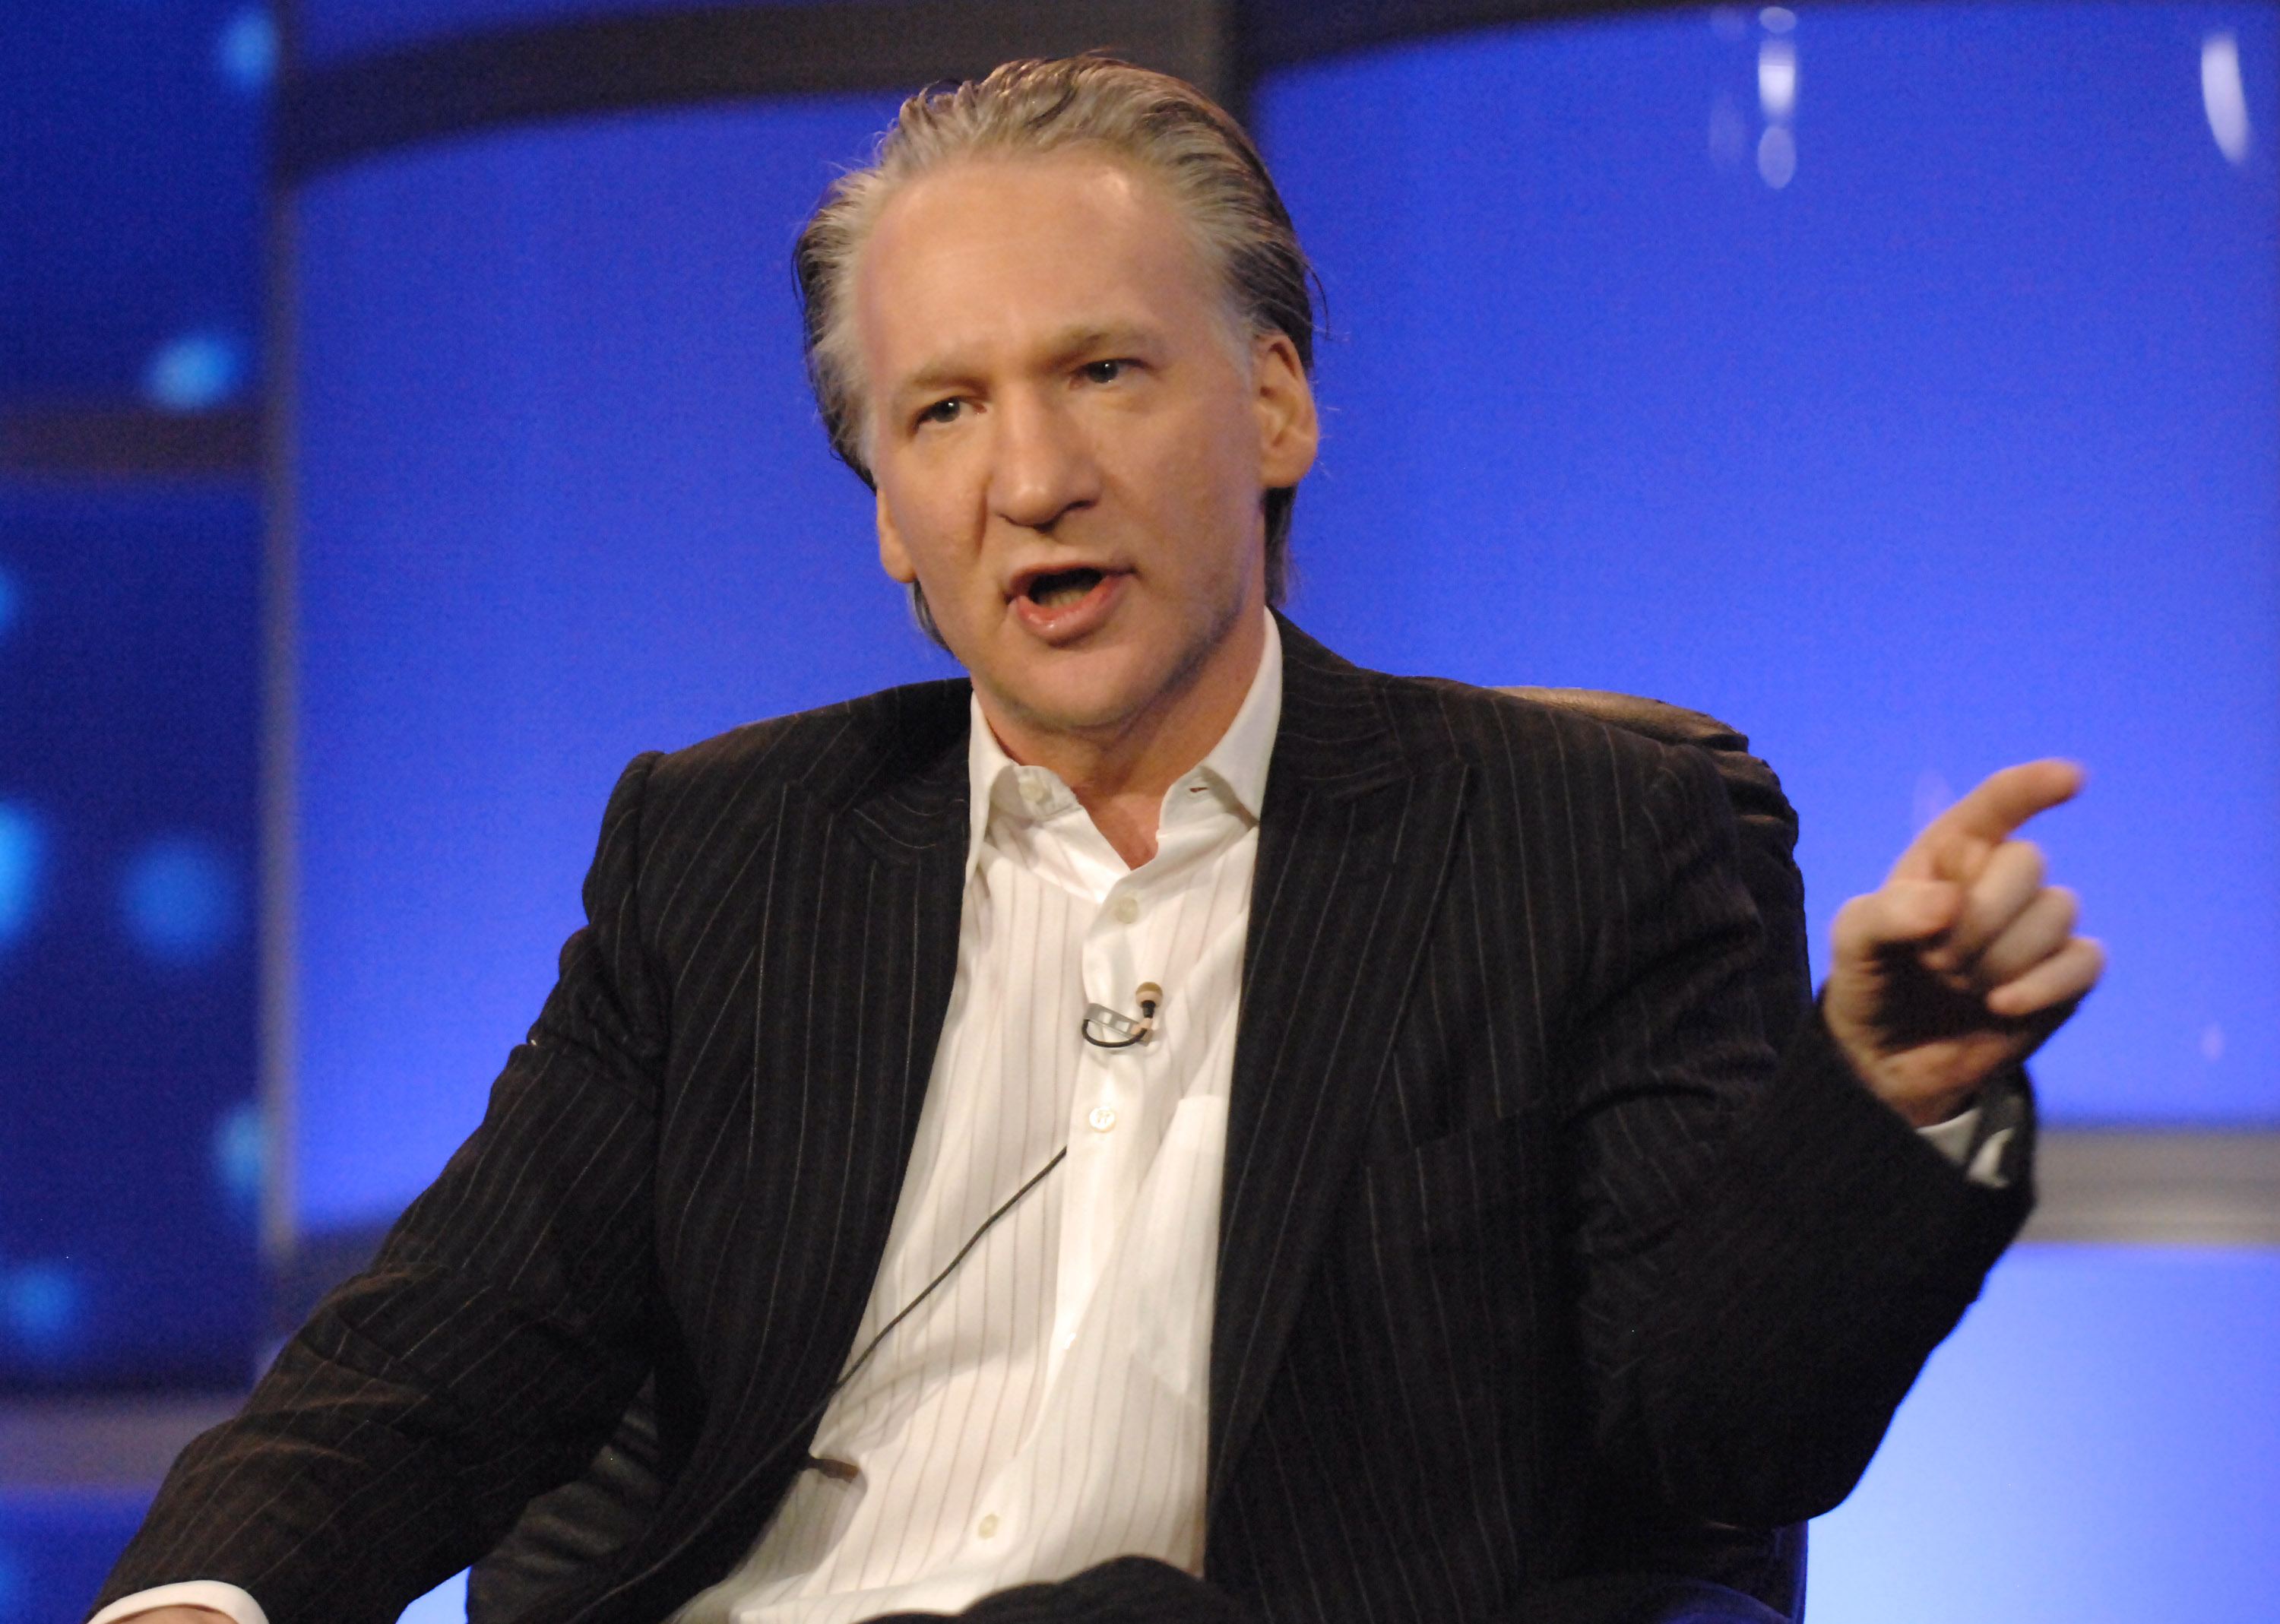 Bill Maher of Real Time with Bill Maher during HBO Winter 2007 TCA Press Tour in Los Angeles, California, United States. (Photo by Jeff Kravitz/FilmMagic, Inc for HBO Films)